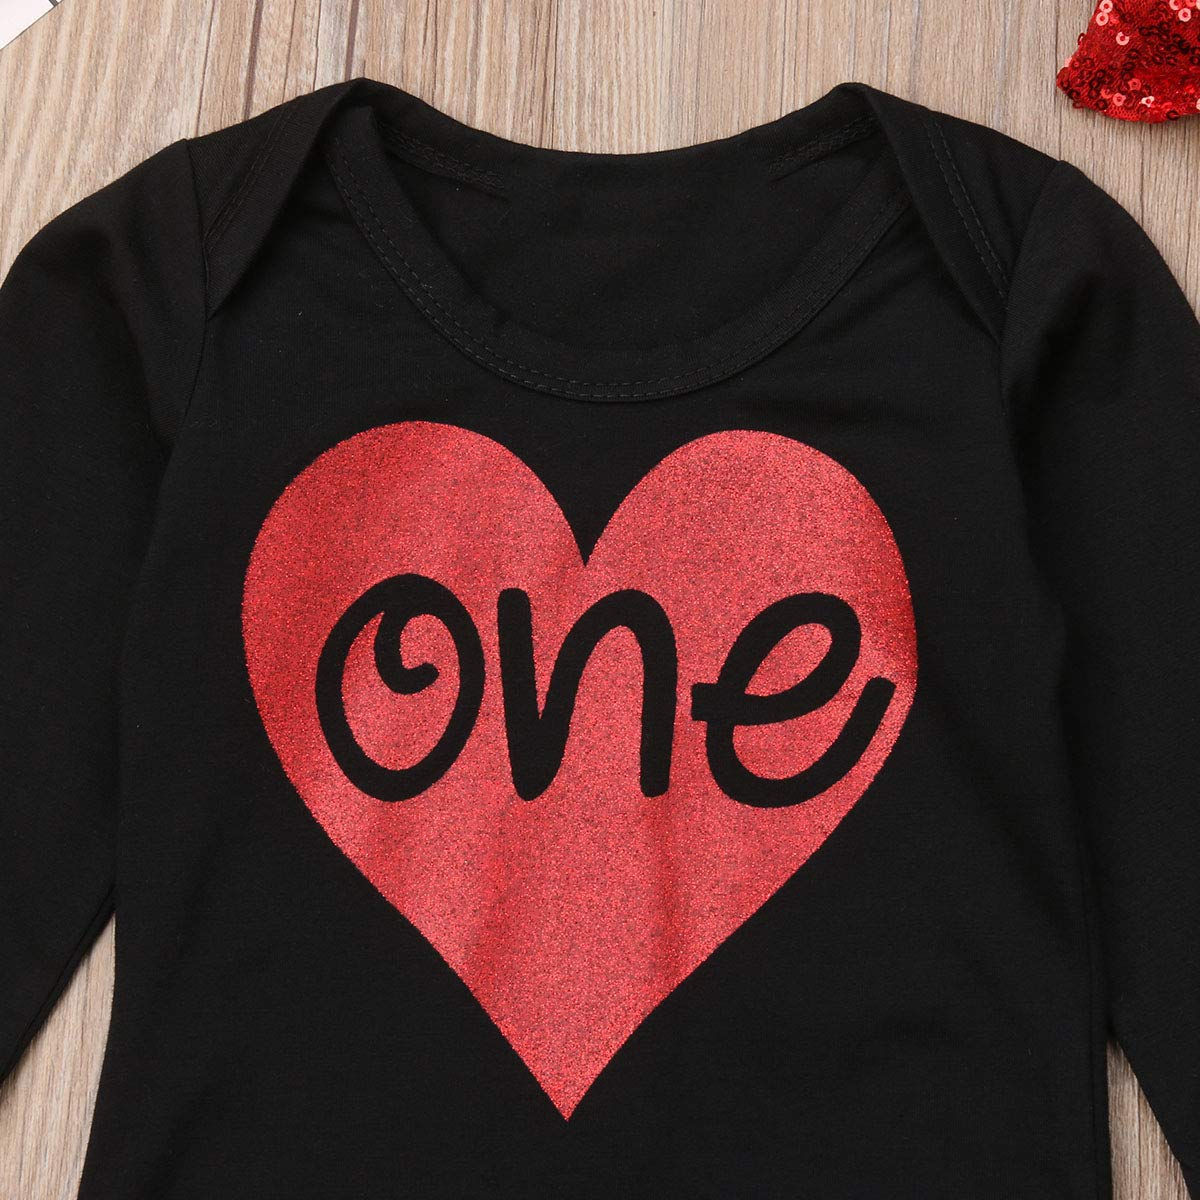 Stocking 4Pcs Baby Girls Red Heart Long Sleeve Black Romper Red Plaid Shirt Sequin Bowknot Outfits